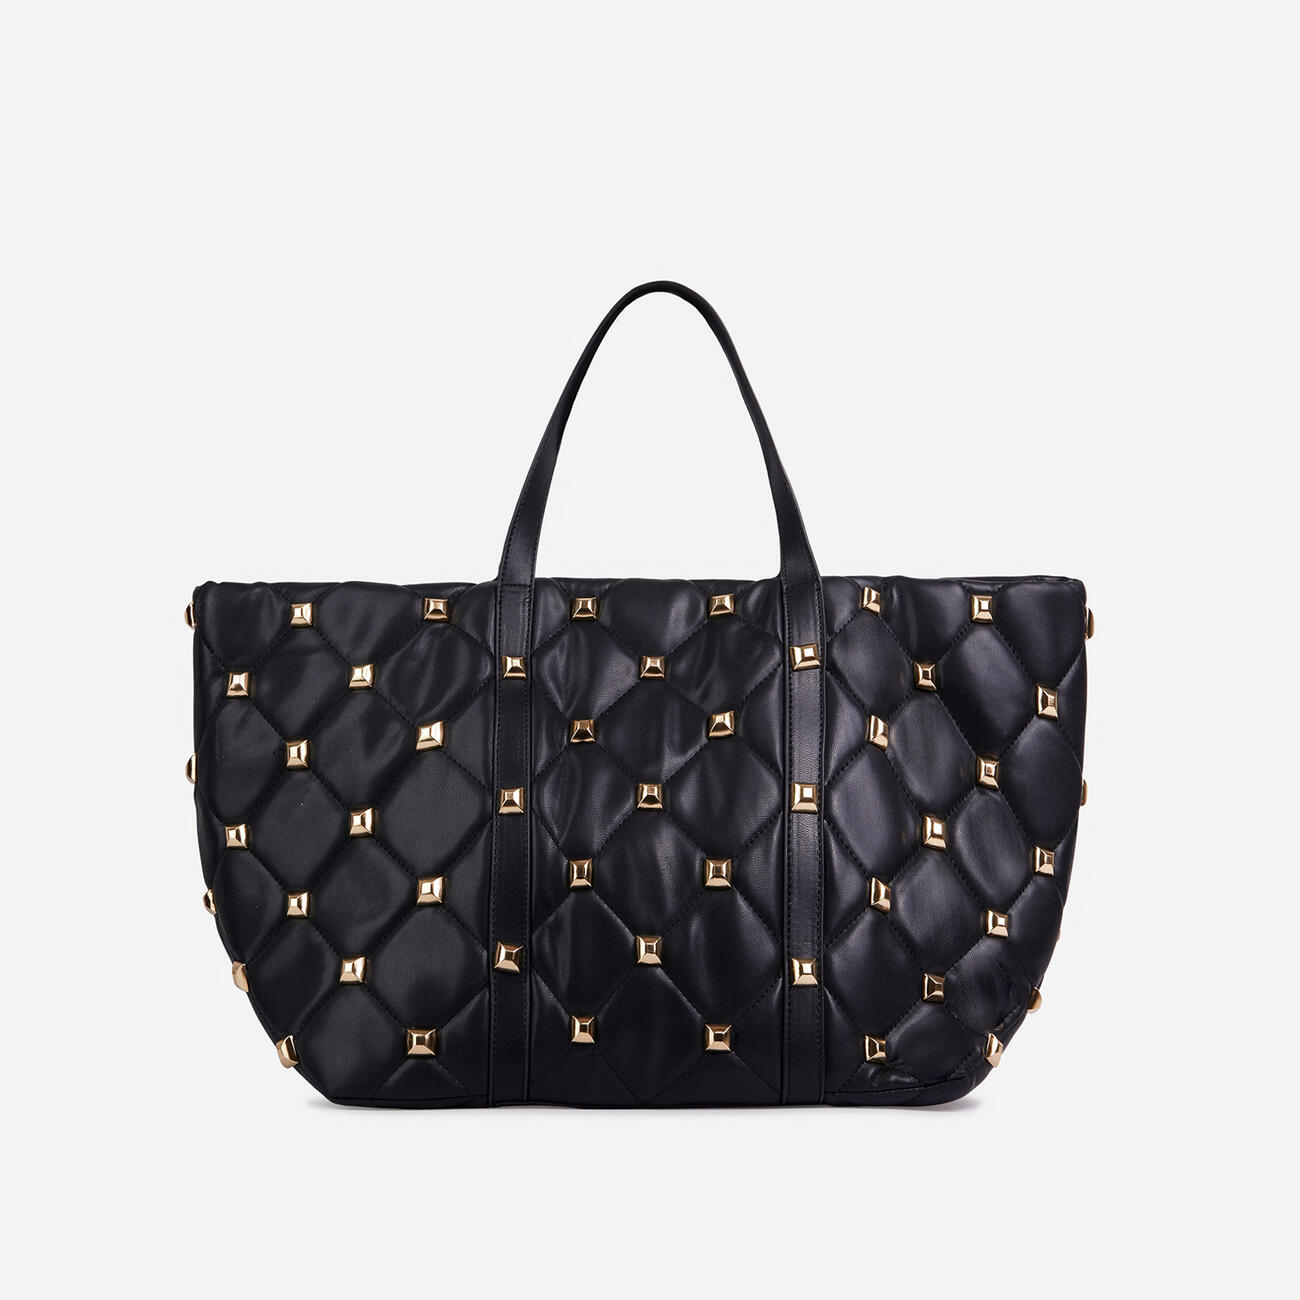 Kym Studded Detail Oversized Tote Bag In Black Faux Leather Image 1